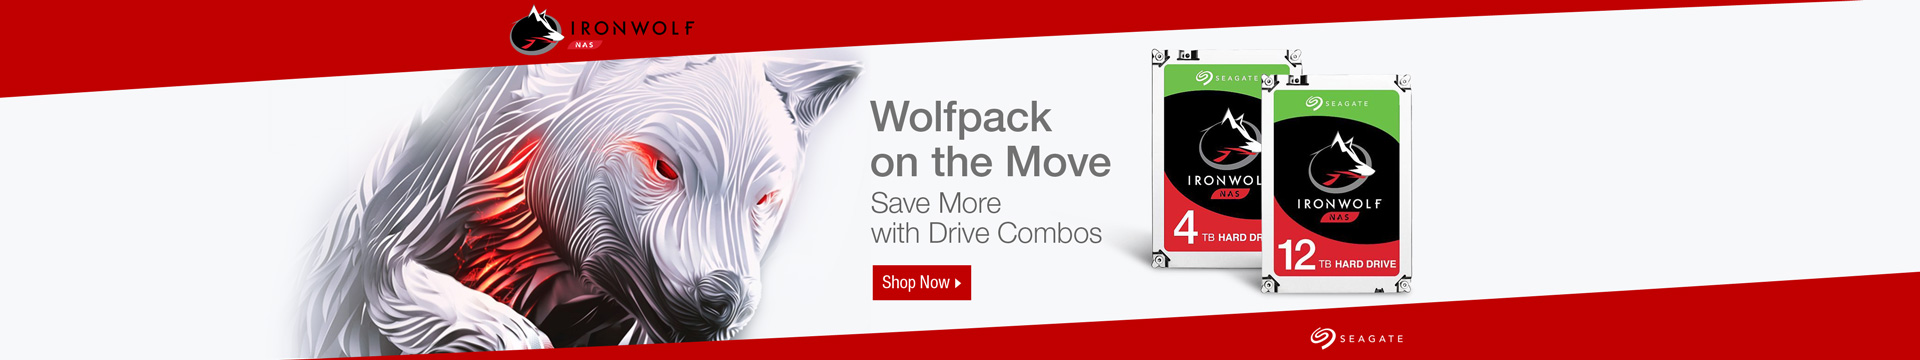 WOLFPACK ON THE MOVE